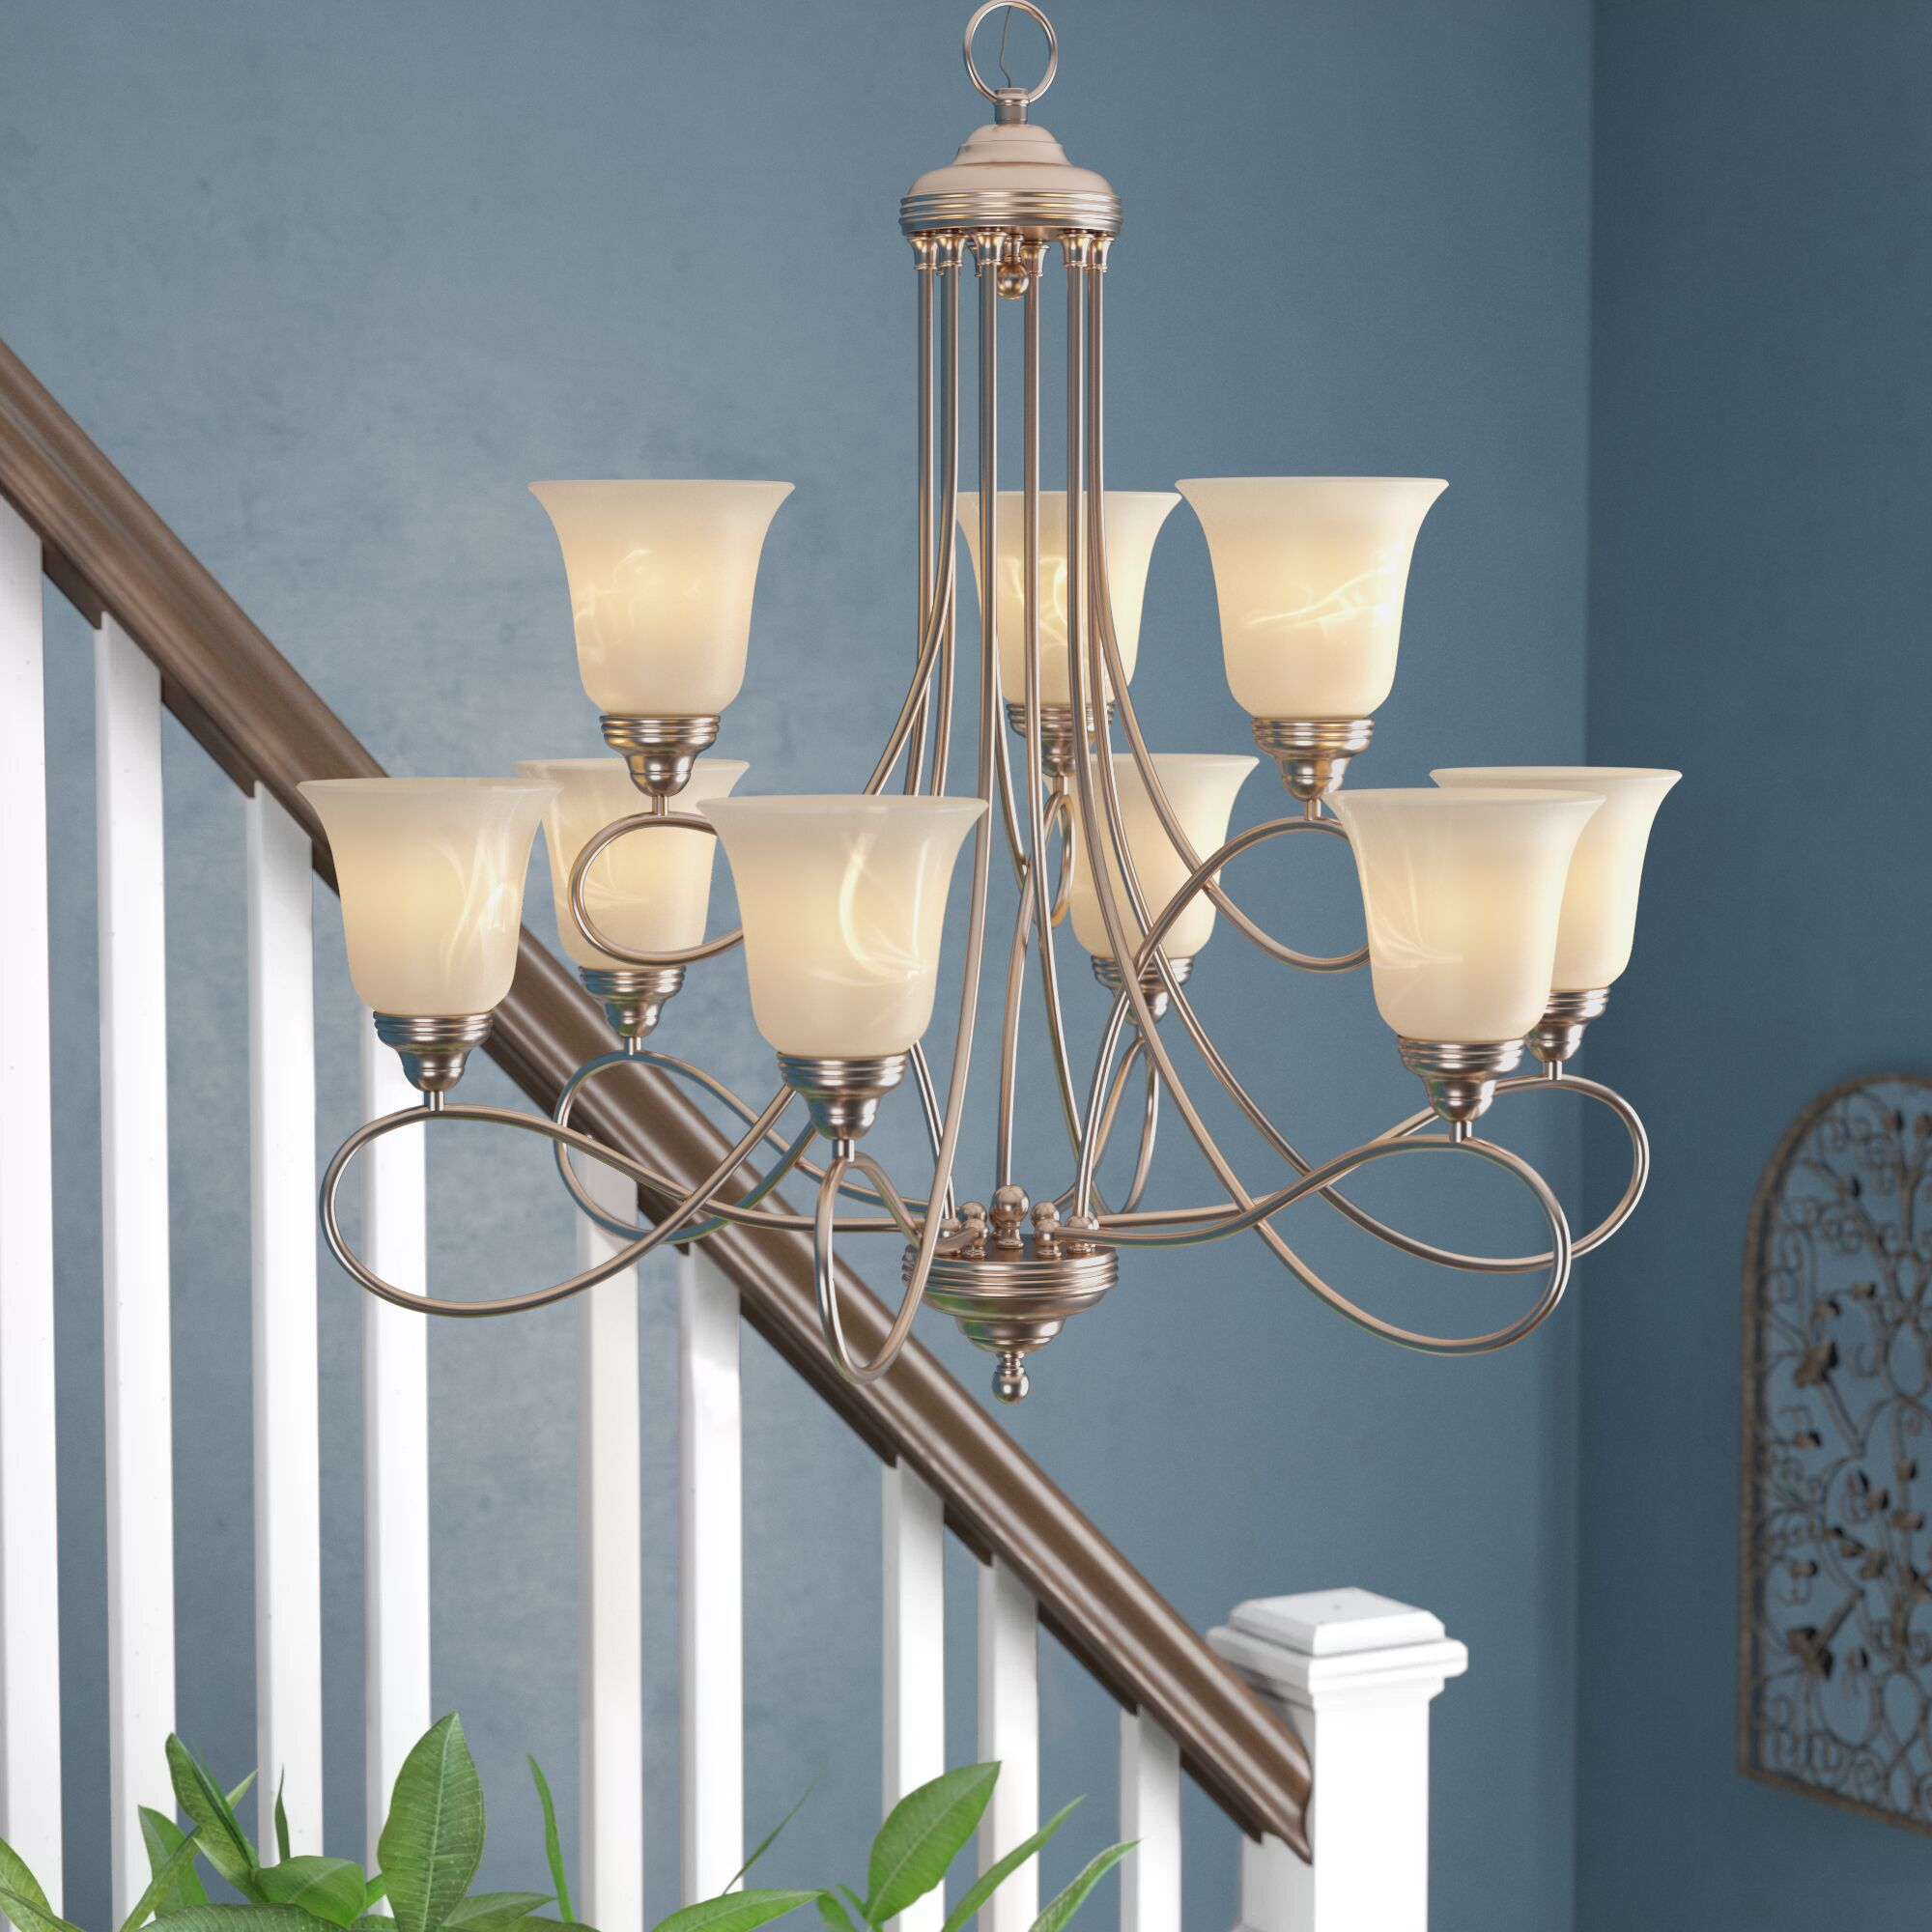 Norwood 9-Light Shaded Chandelier Finish: Satin Nickel with Marble Shade